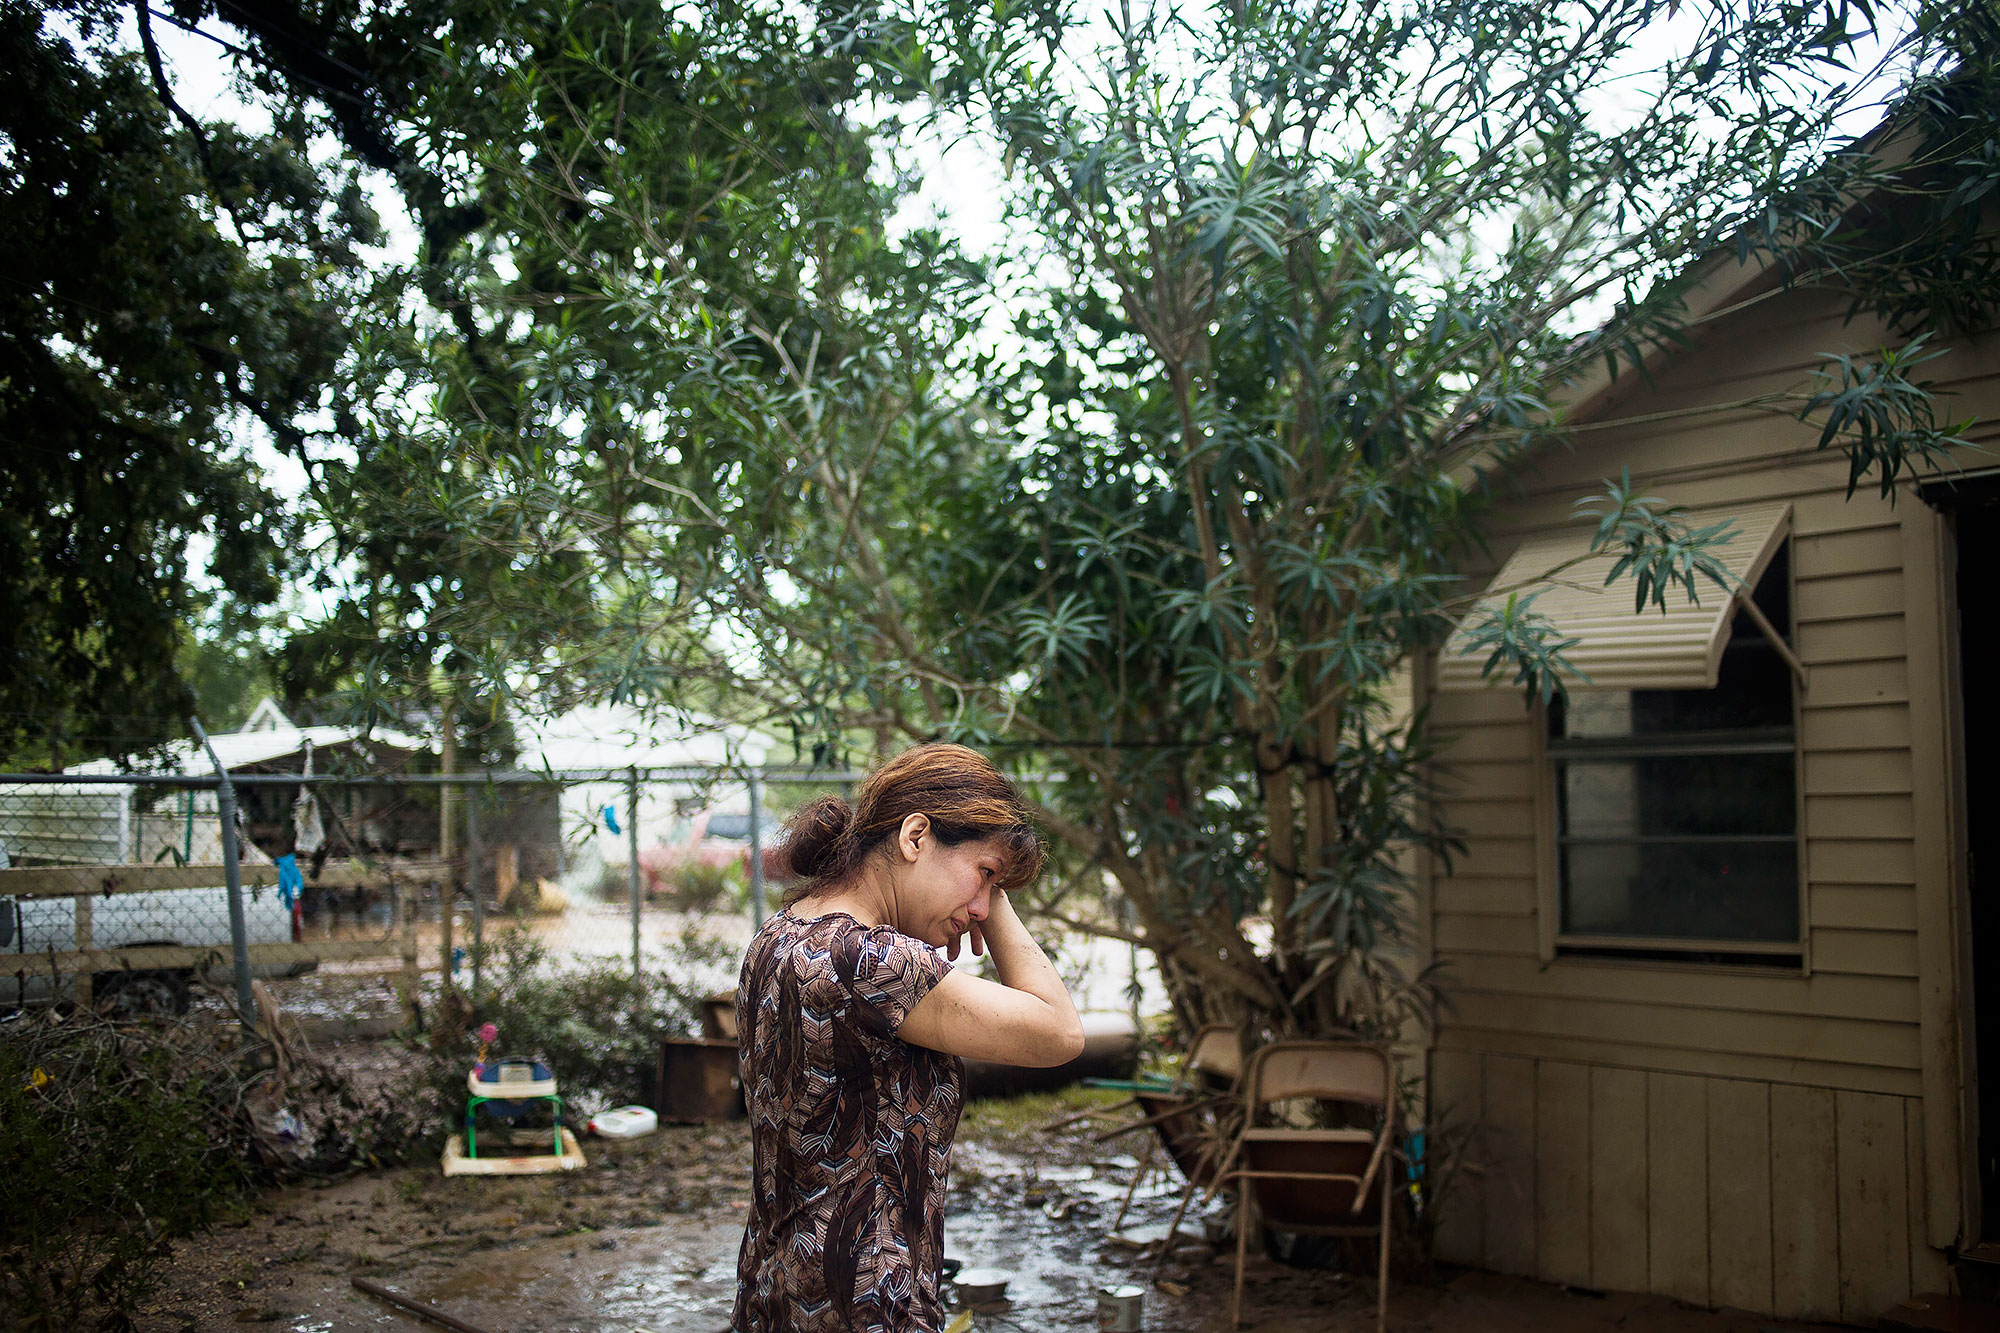 Flor Portilla outside her home in East Houston, Texas after Hur